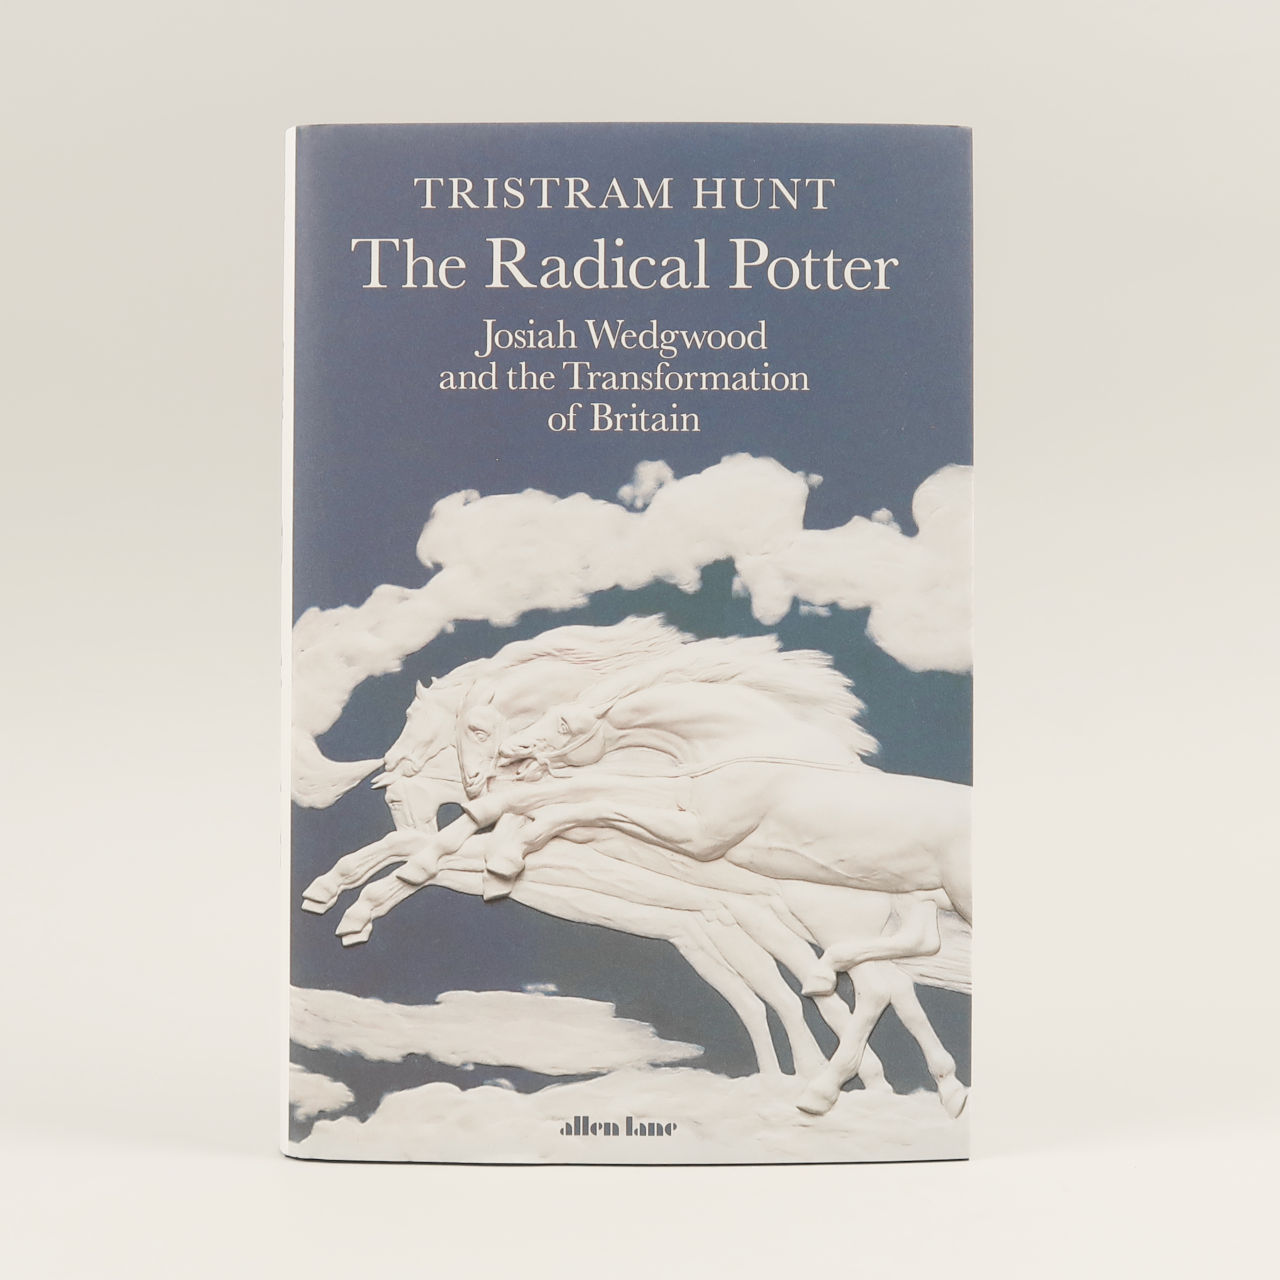 The Radical Potter: Josiah Wedgwood and the Transformation of Britain - Tristram Hunt